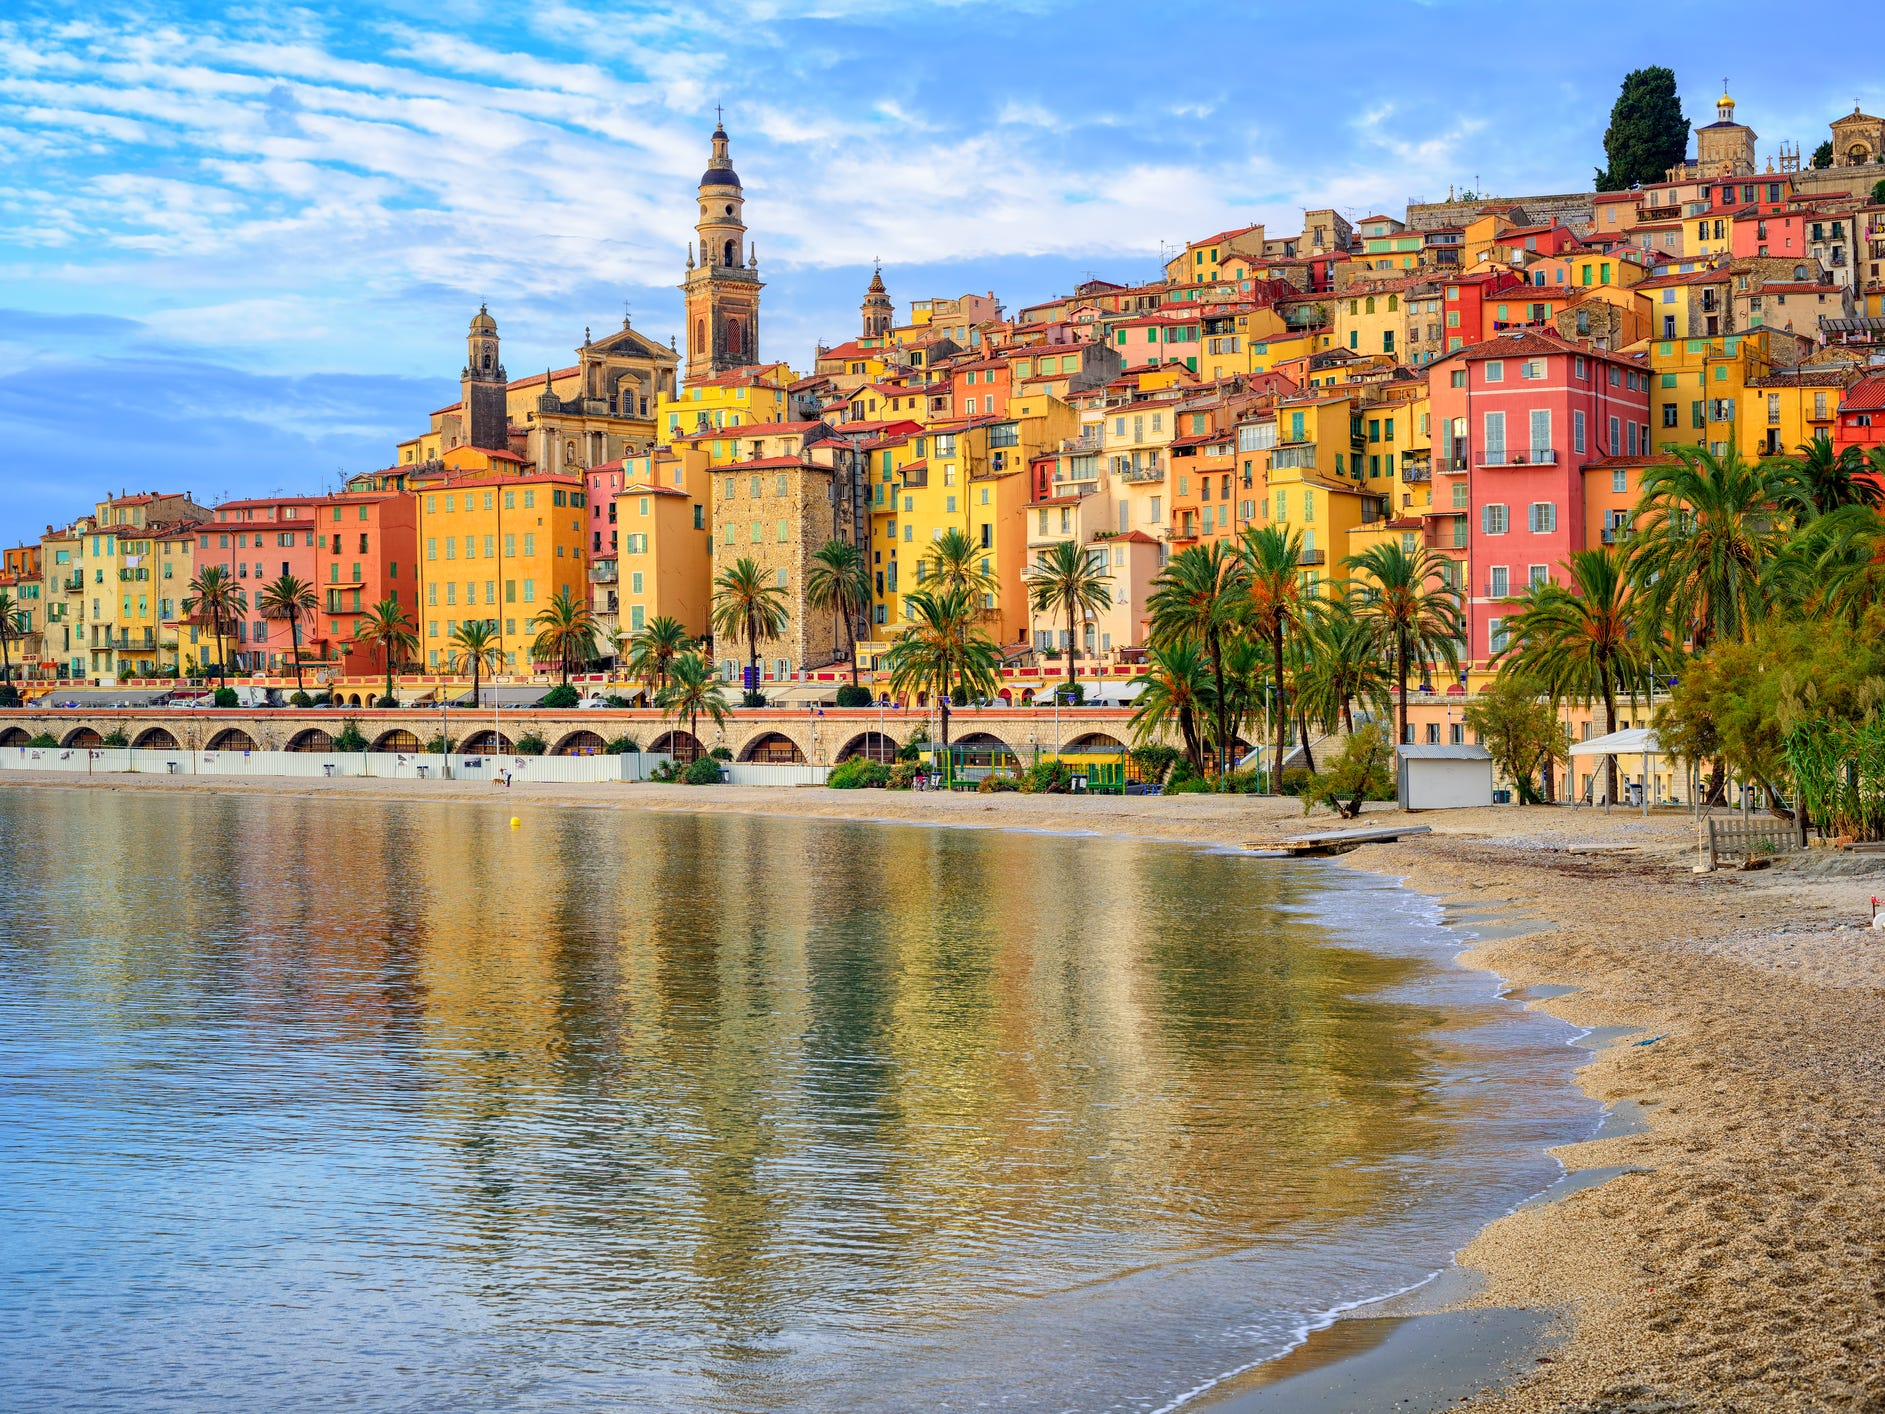 Menton, France: Menton may be less flashy than French Riviera neighbors like St. Tropez and Monaco, but its laid-back vibe and colorful waterfront — with pastel-painted buildings overlooking a sun-splashed sandy beach — make it undeniably appealing to travelers.